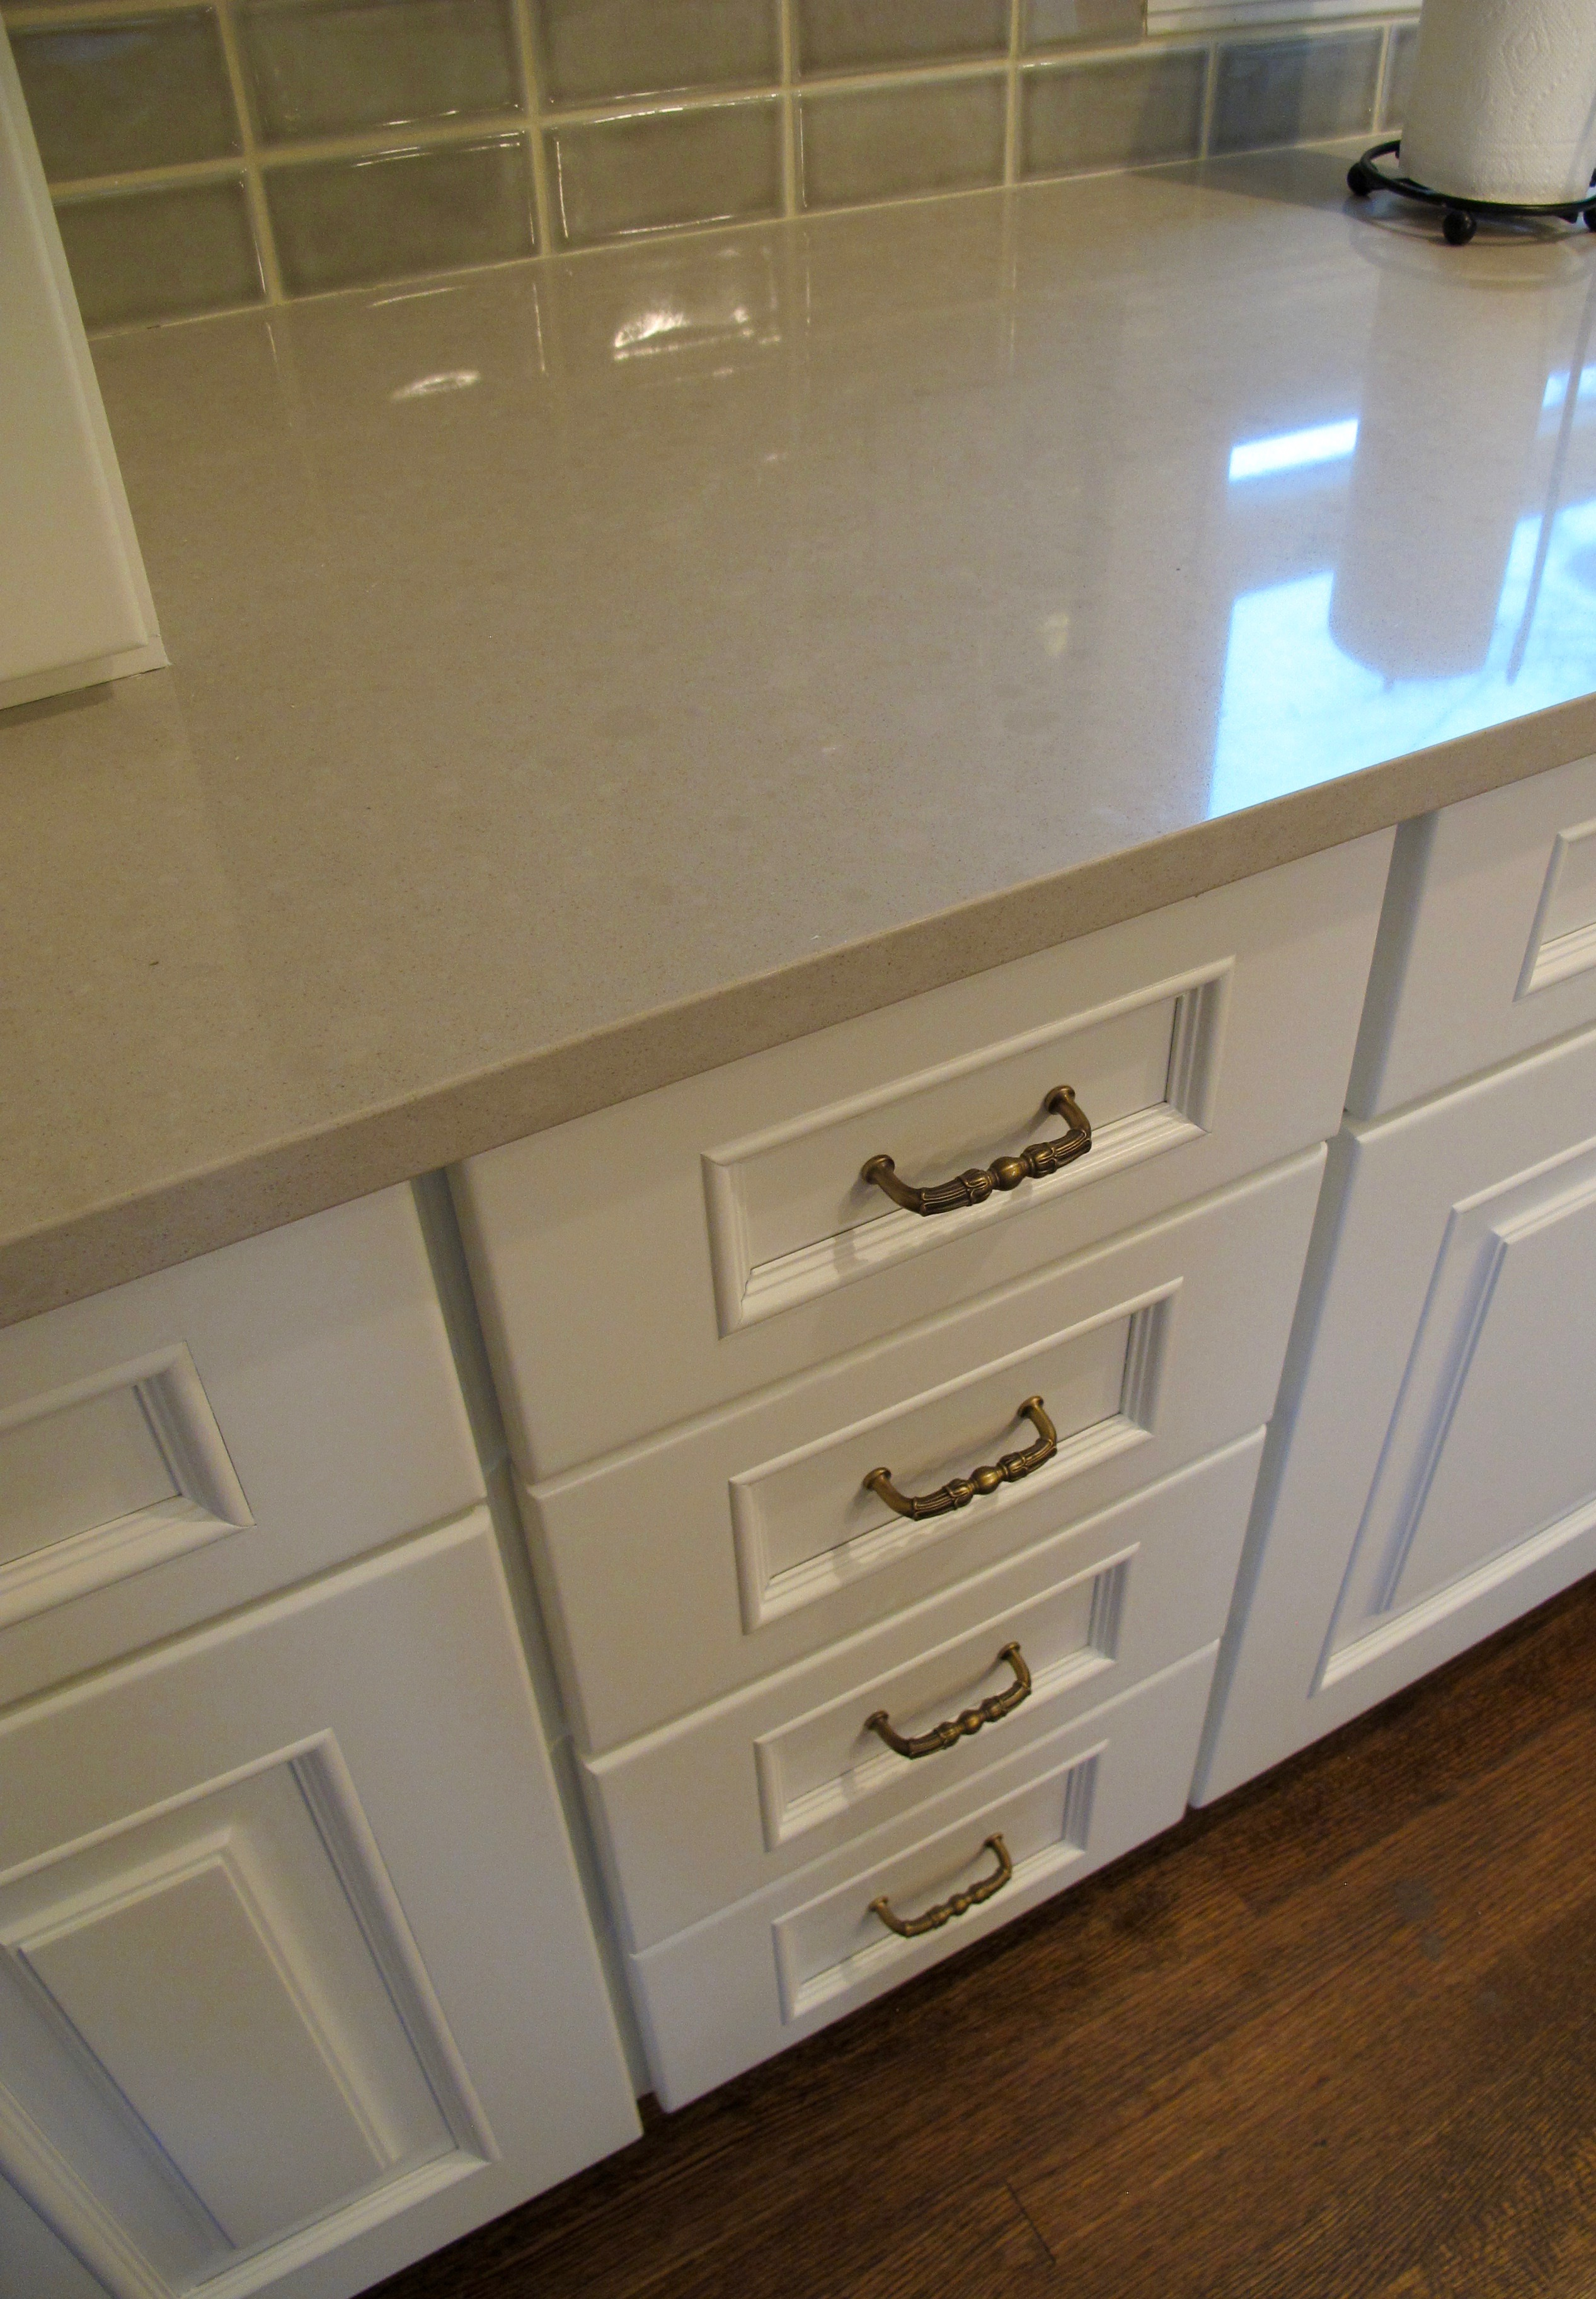 refinishing kitchen countertops base cabinet organizers chicago | ragsdale, inc